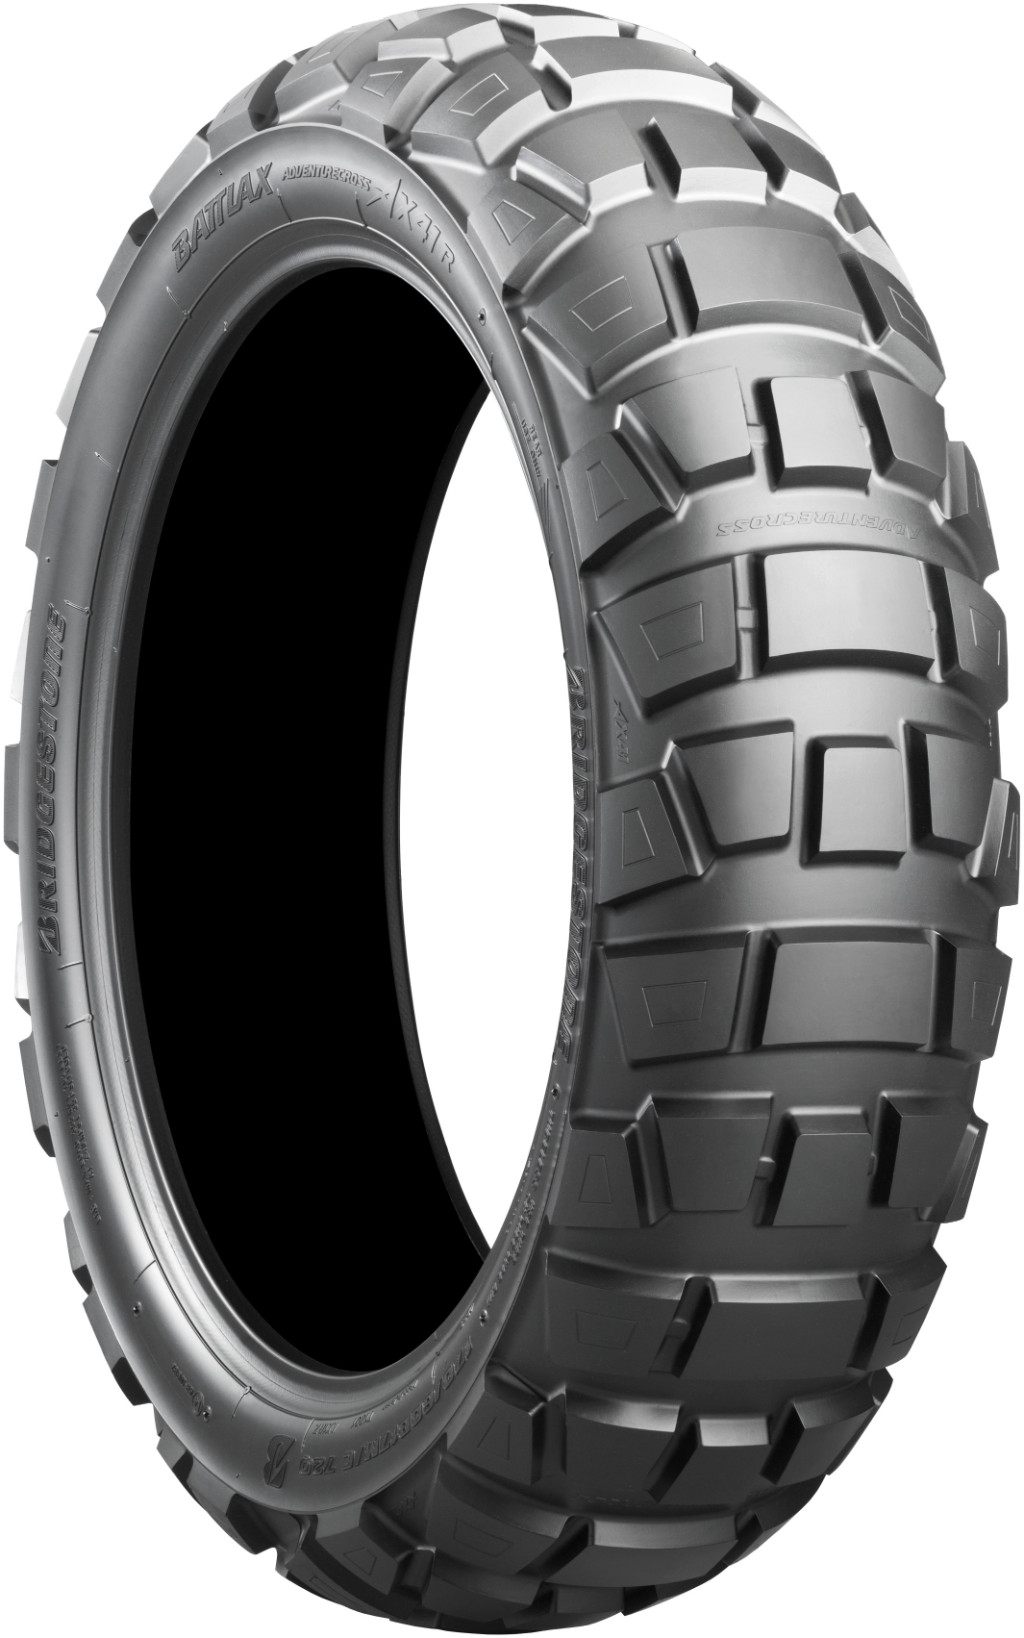 BRIDGESTONE BATTLAX ADVENTURECROSS AX41 [140/80B 17M/C 69Q] Tire